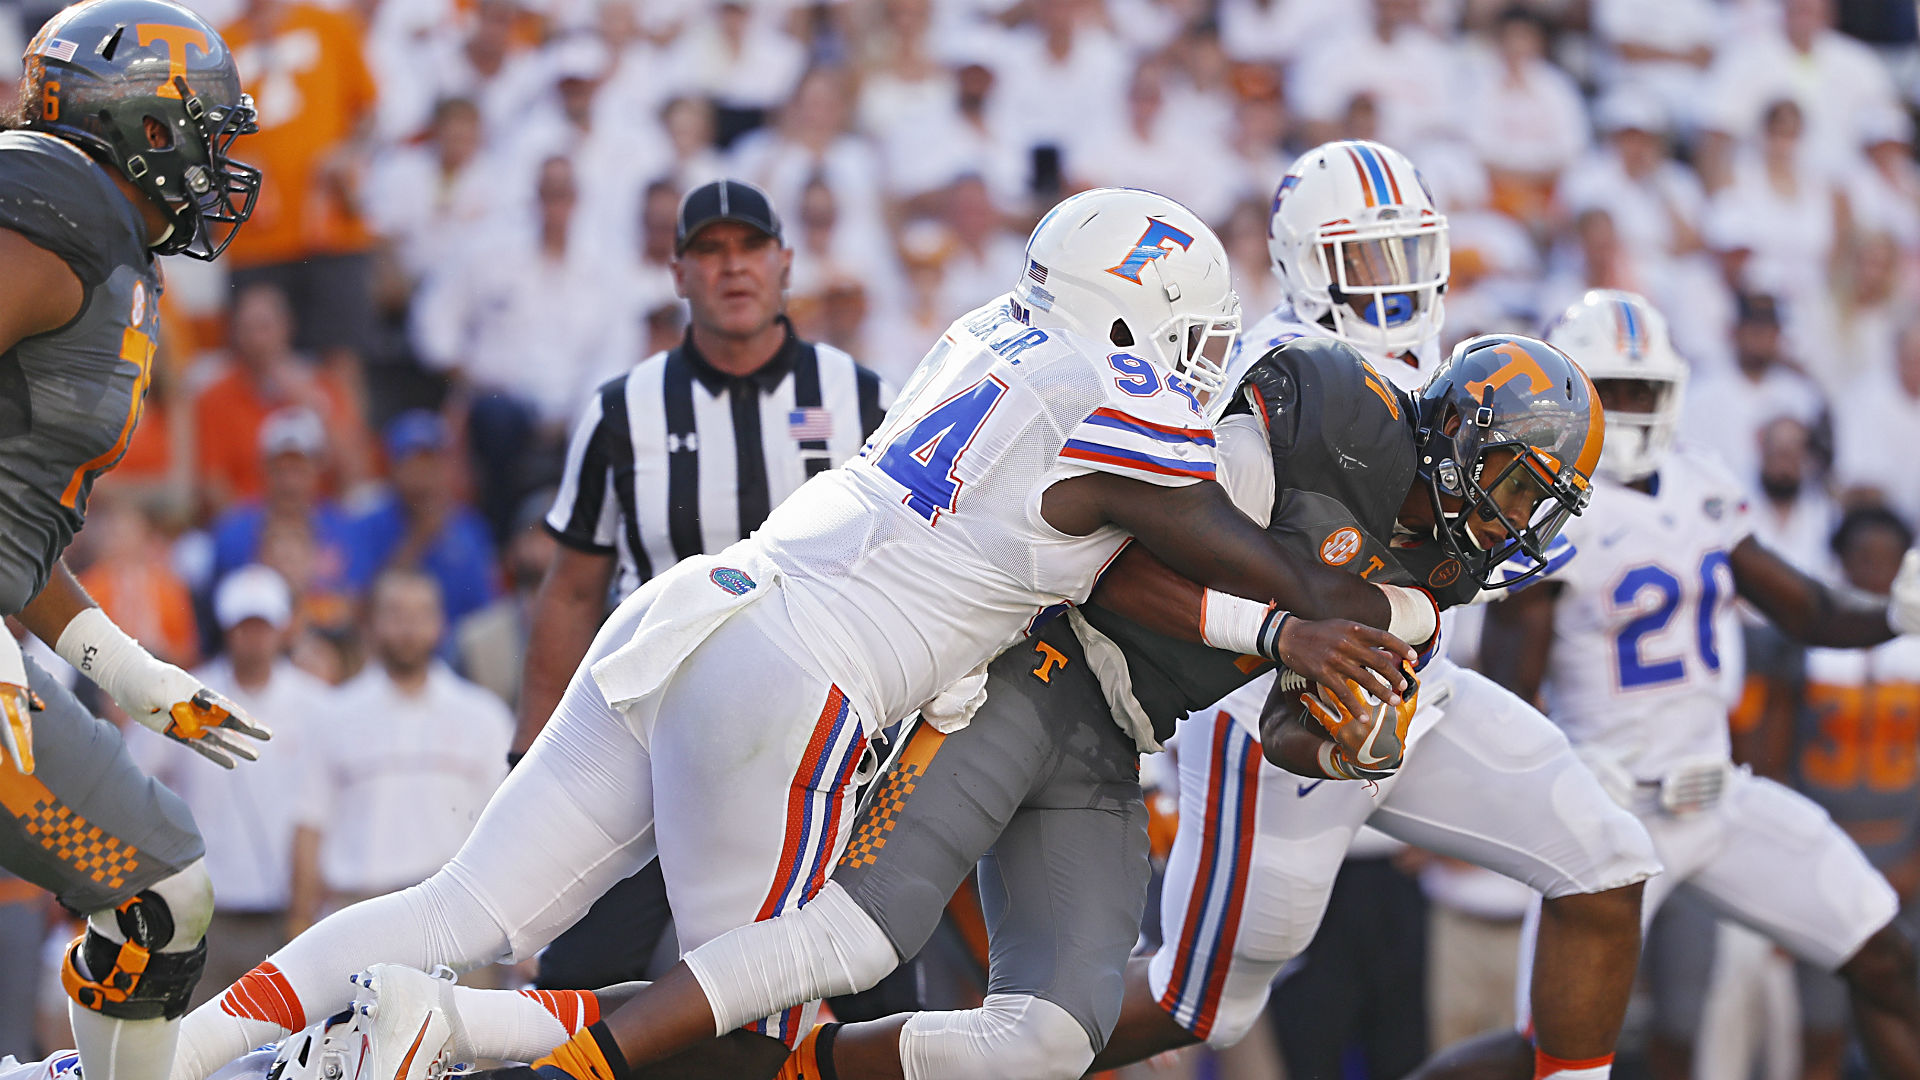 SEC: Tennessee holds on to beat Florida